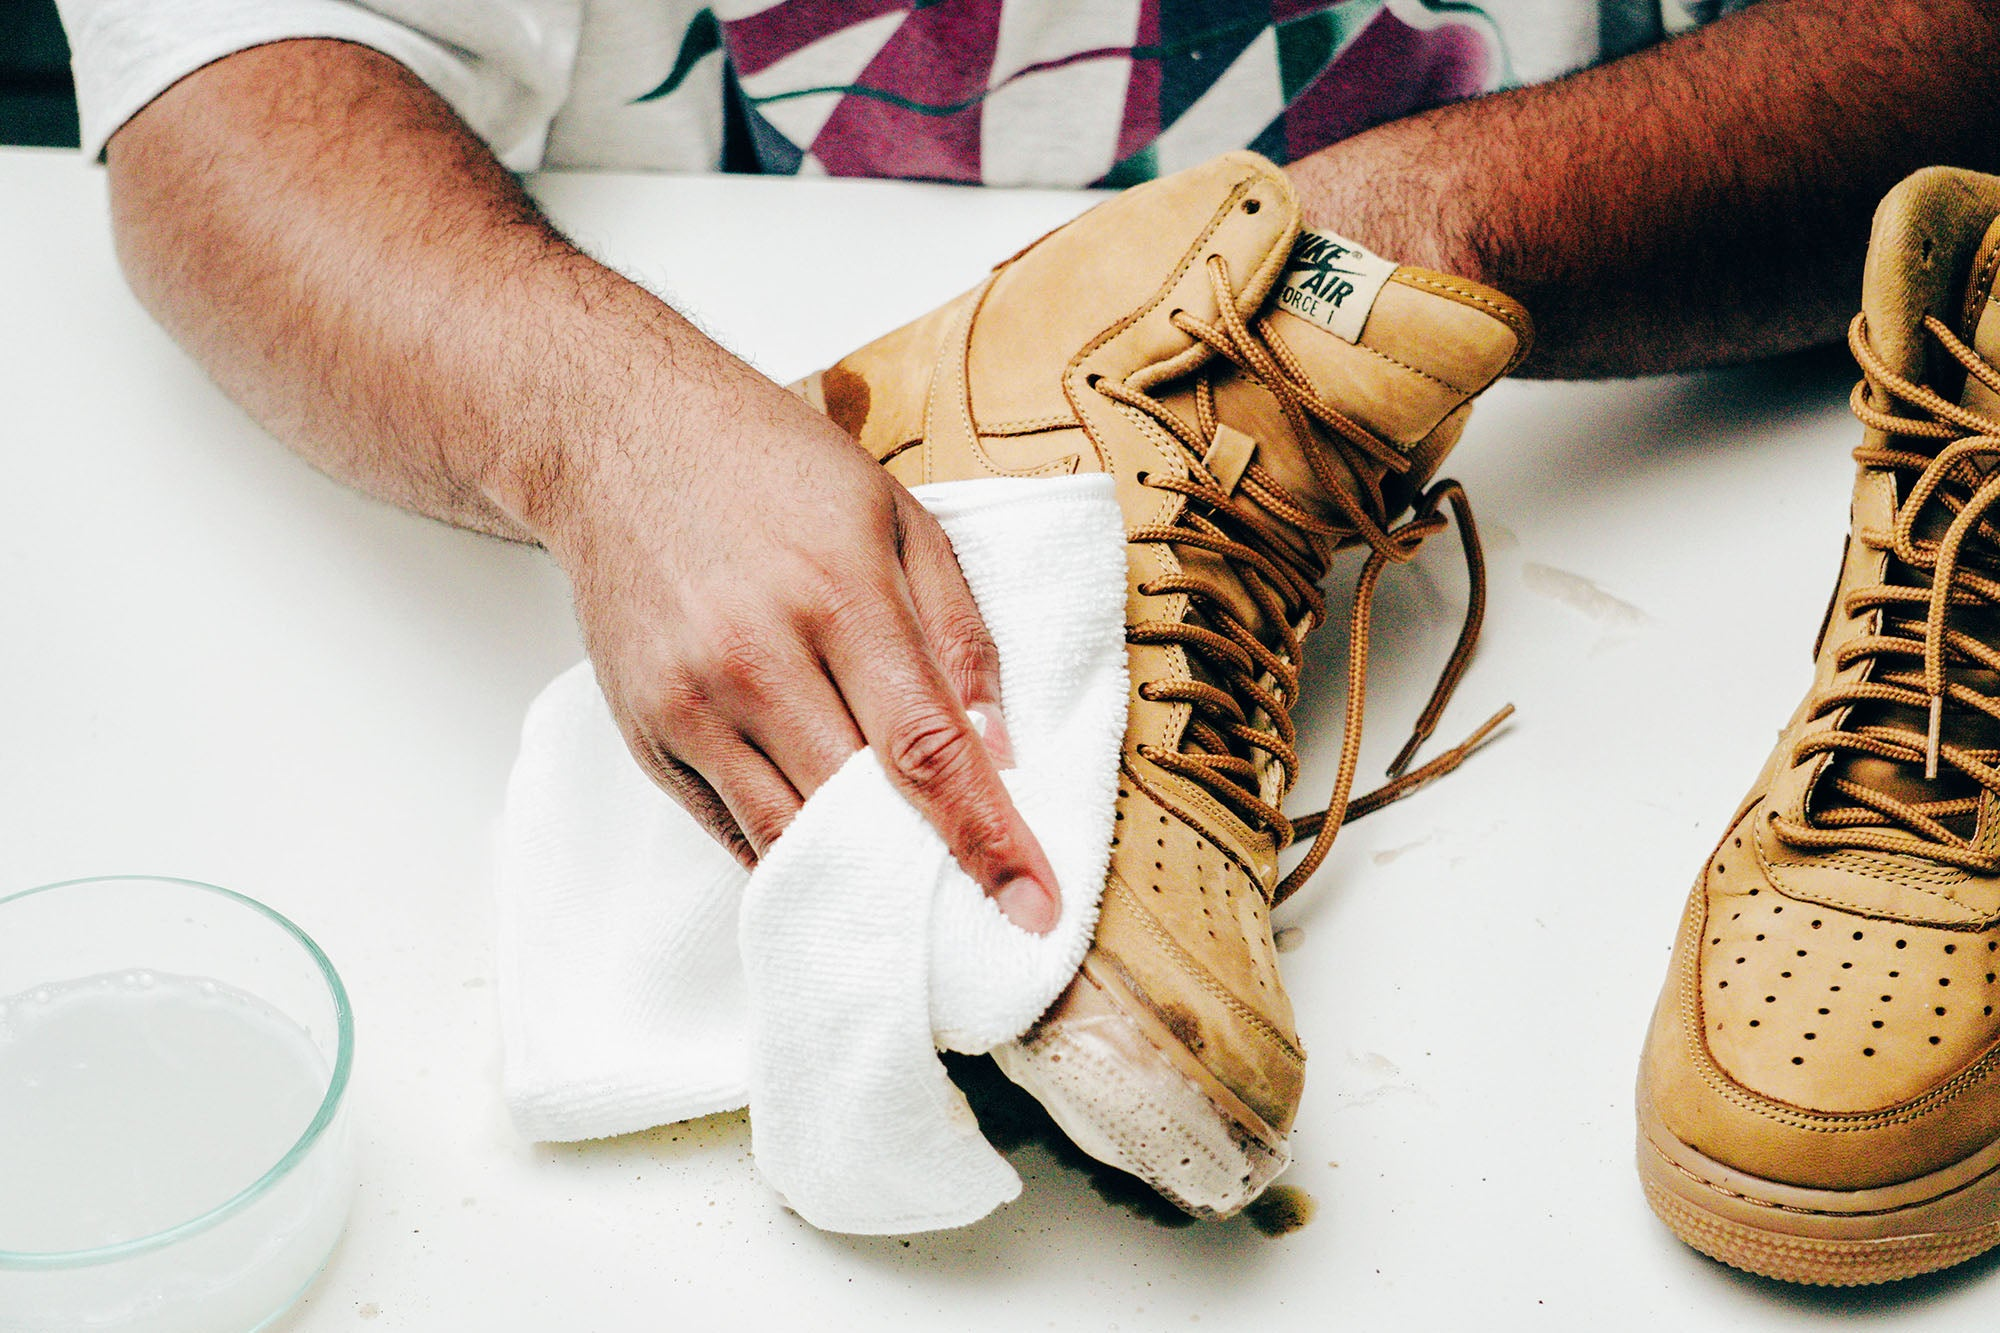 Jason Markk Sneaker Care 101 How to clean Nubuck shoes step 8